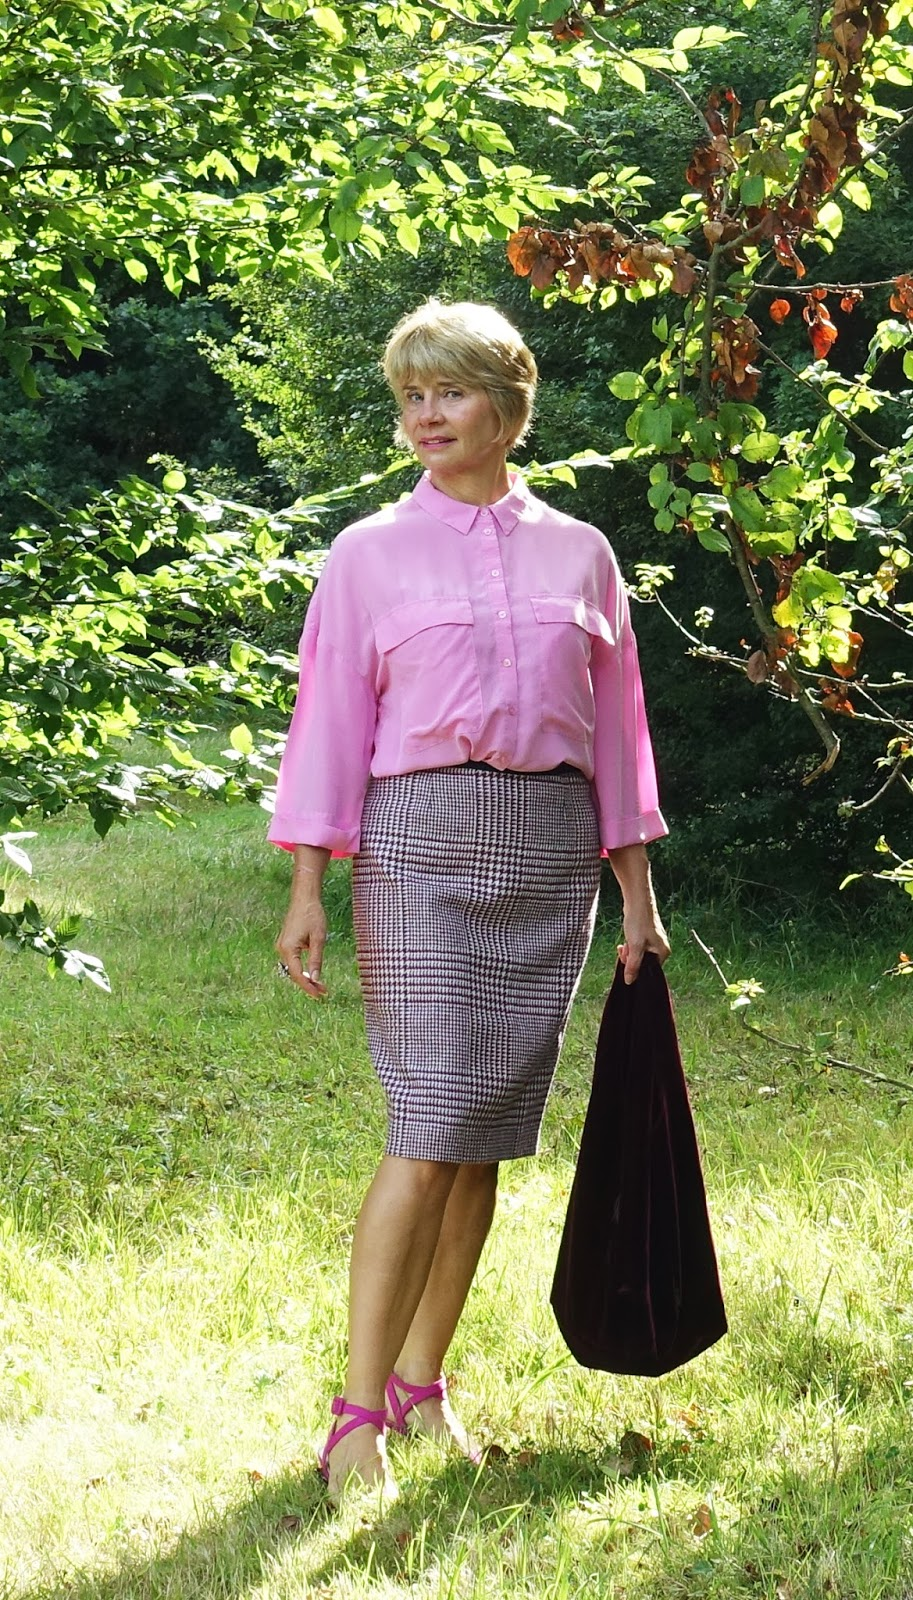 With the shorter days but the last rays of summer sunshine, a Prince of Wales check skirt is a nod to Autumn and worn with sandals and a crisp silk blouse, smart and transitional for work